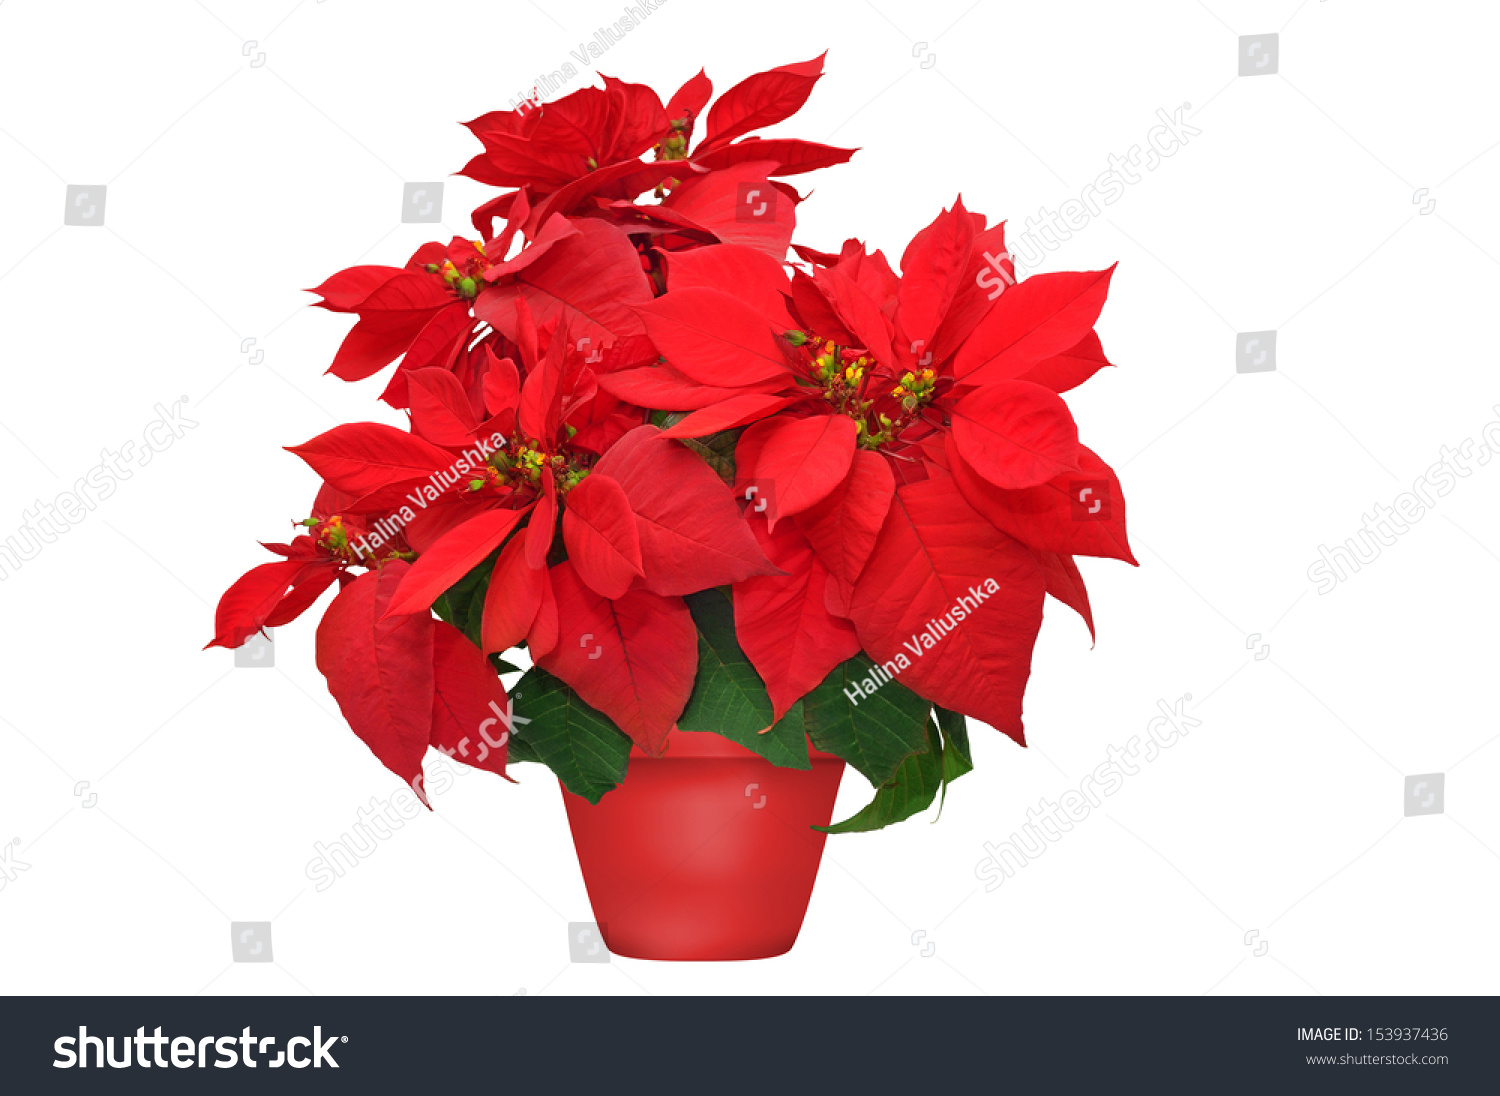 Beautiful Poinsettia Red Christmas Flower On White